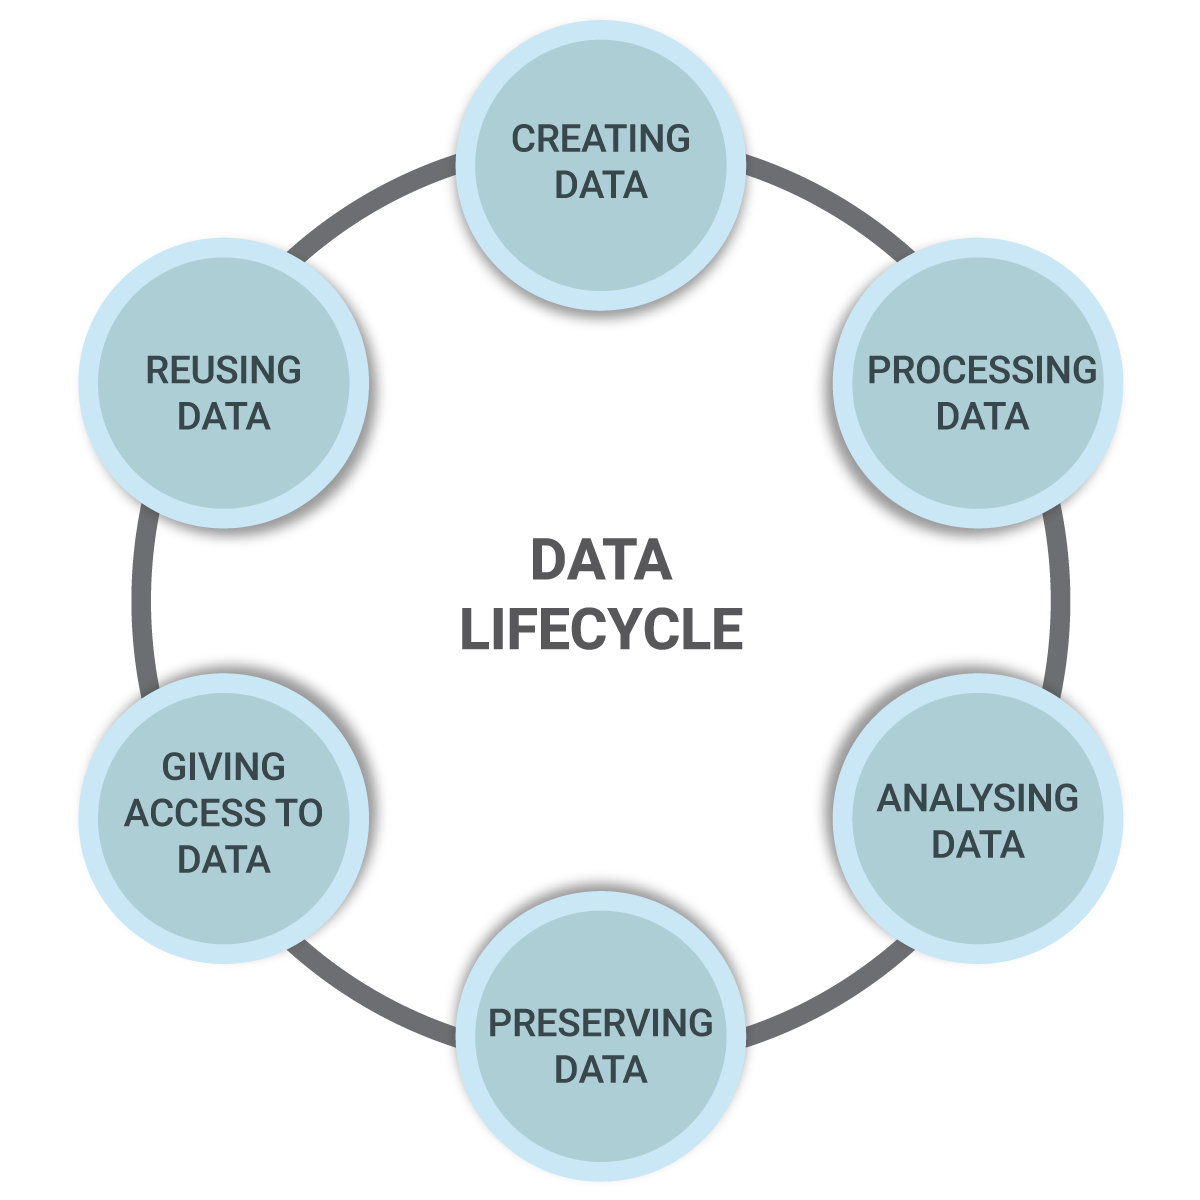 effective data management Guidelines for effective data management plans 3 are shared through an archive, research productivity increases and many times the number of publications result as opposed.